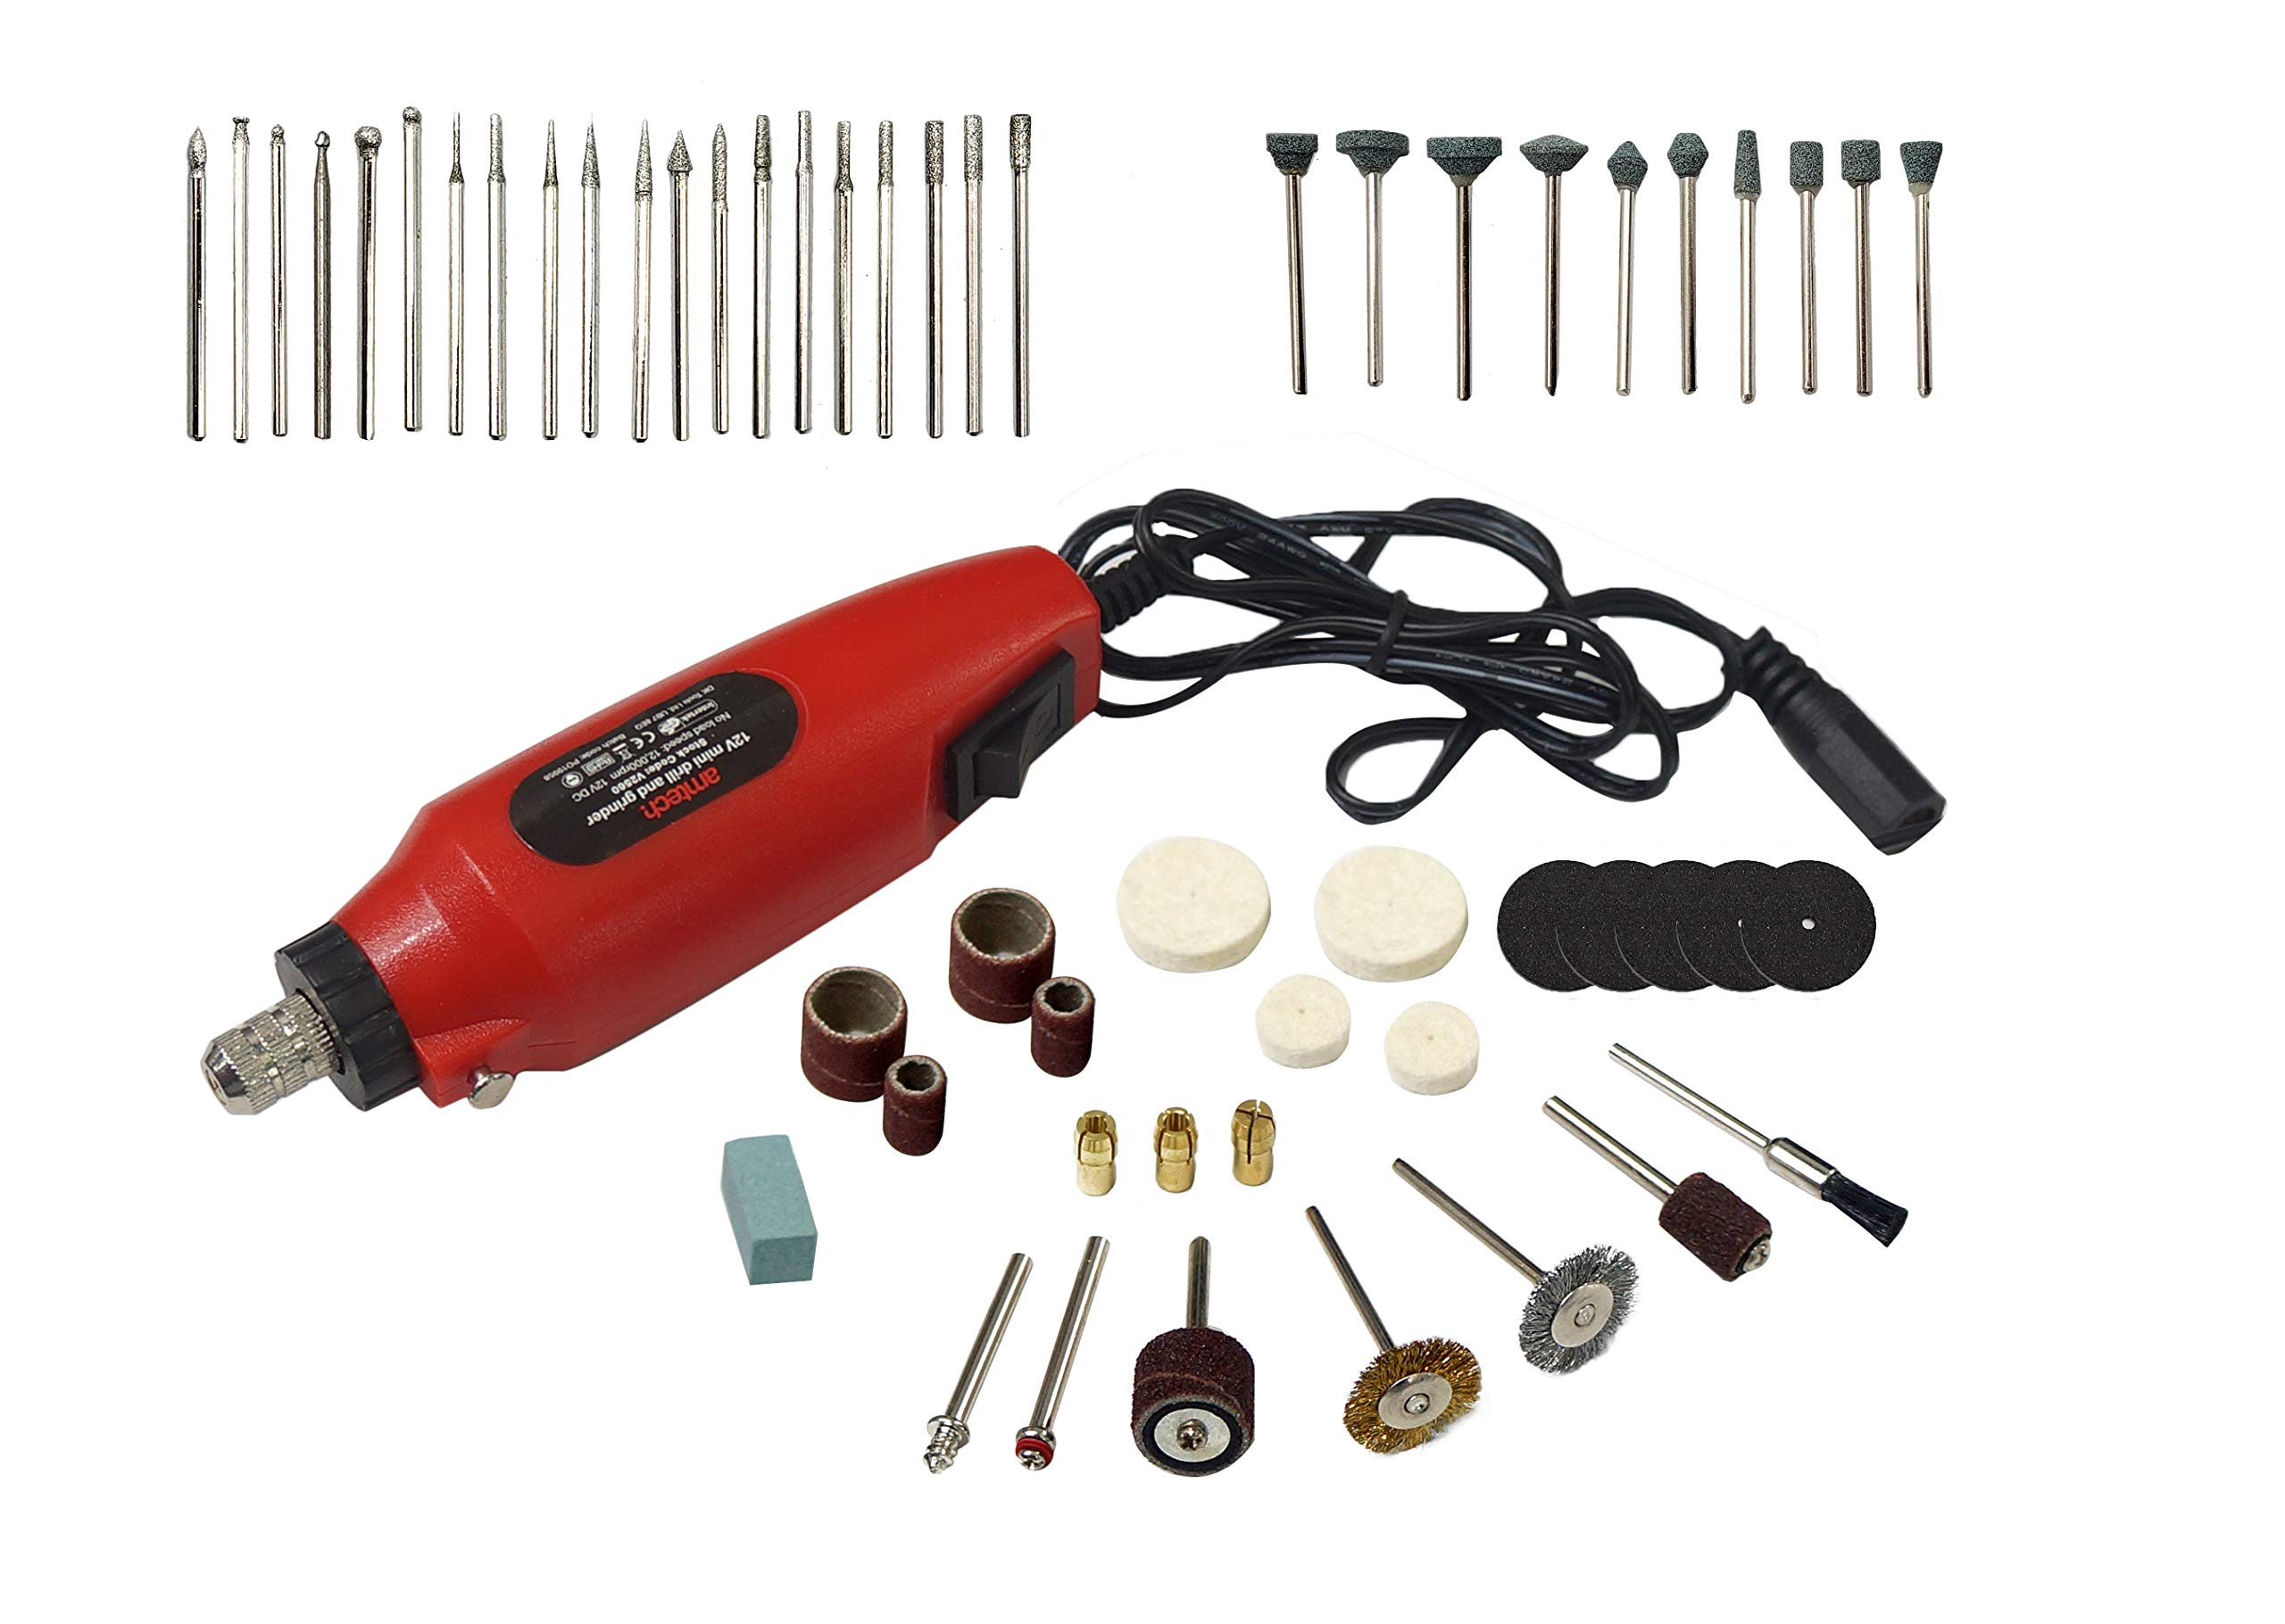 15000r//m Mini Drill Grinder Electric Variable Speed Rotary Craft Milling Tools